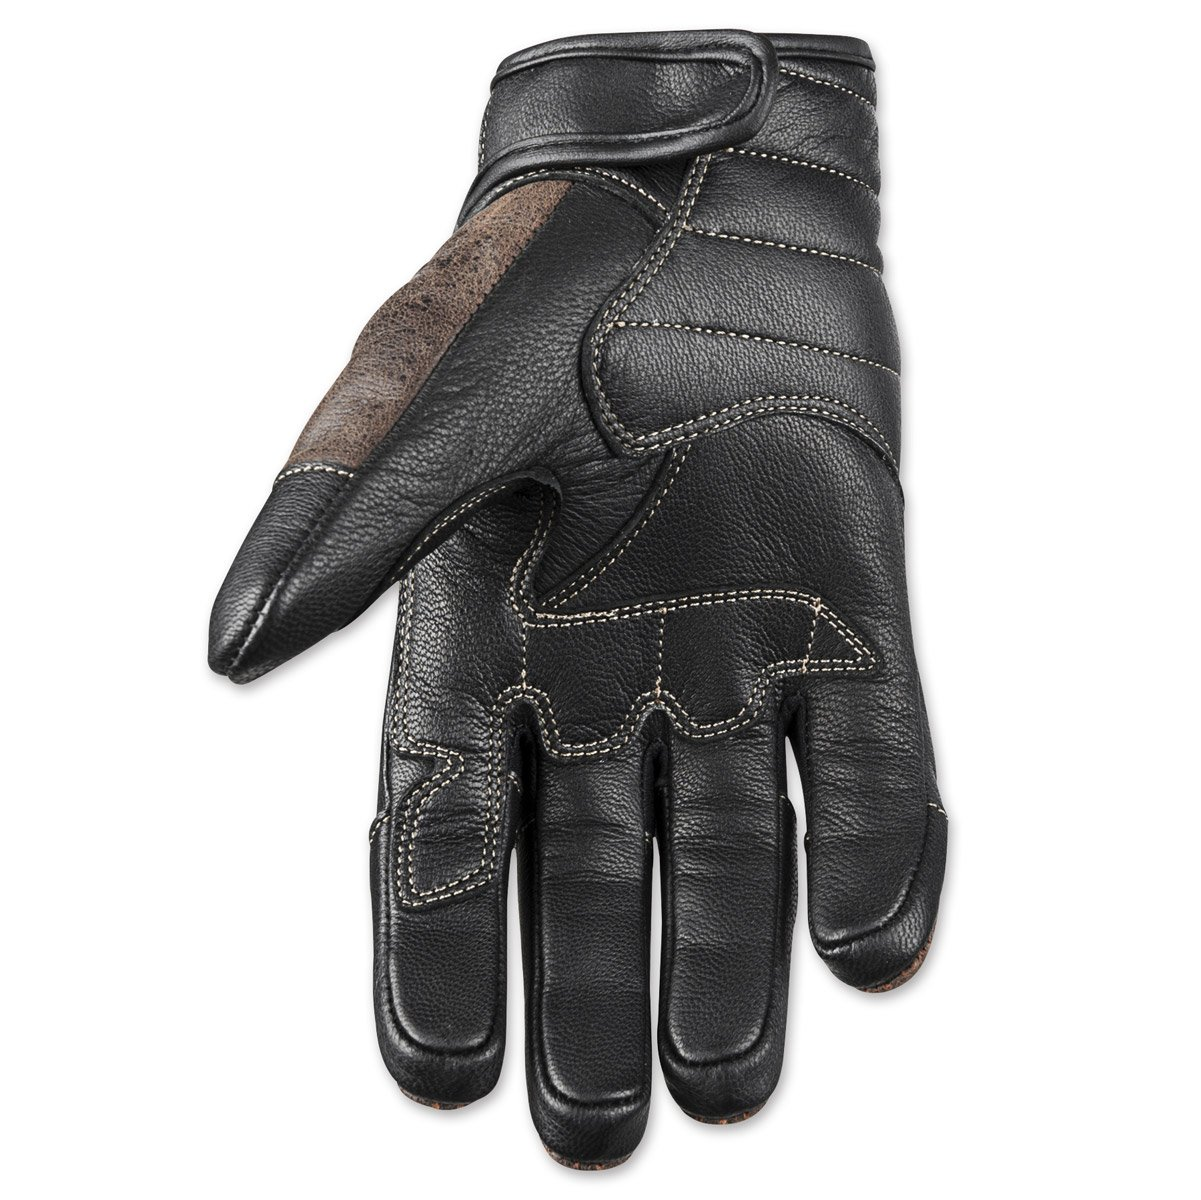 Leather driving gloves vancouver - Speed And Strength Rust And Redemption Men S Leather Street Racing Motorcycle Gloves Brown Small Gloves Amazon Canada